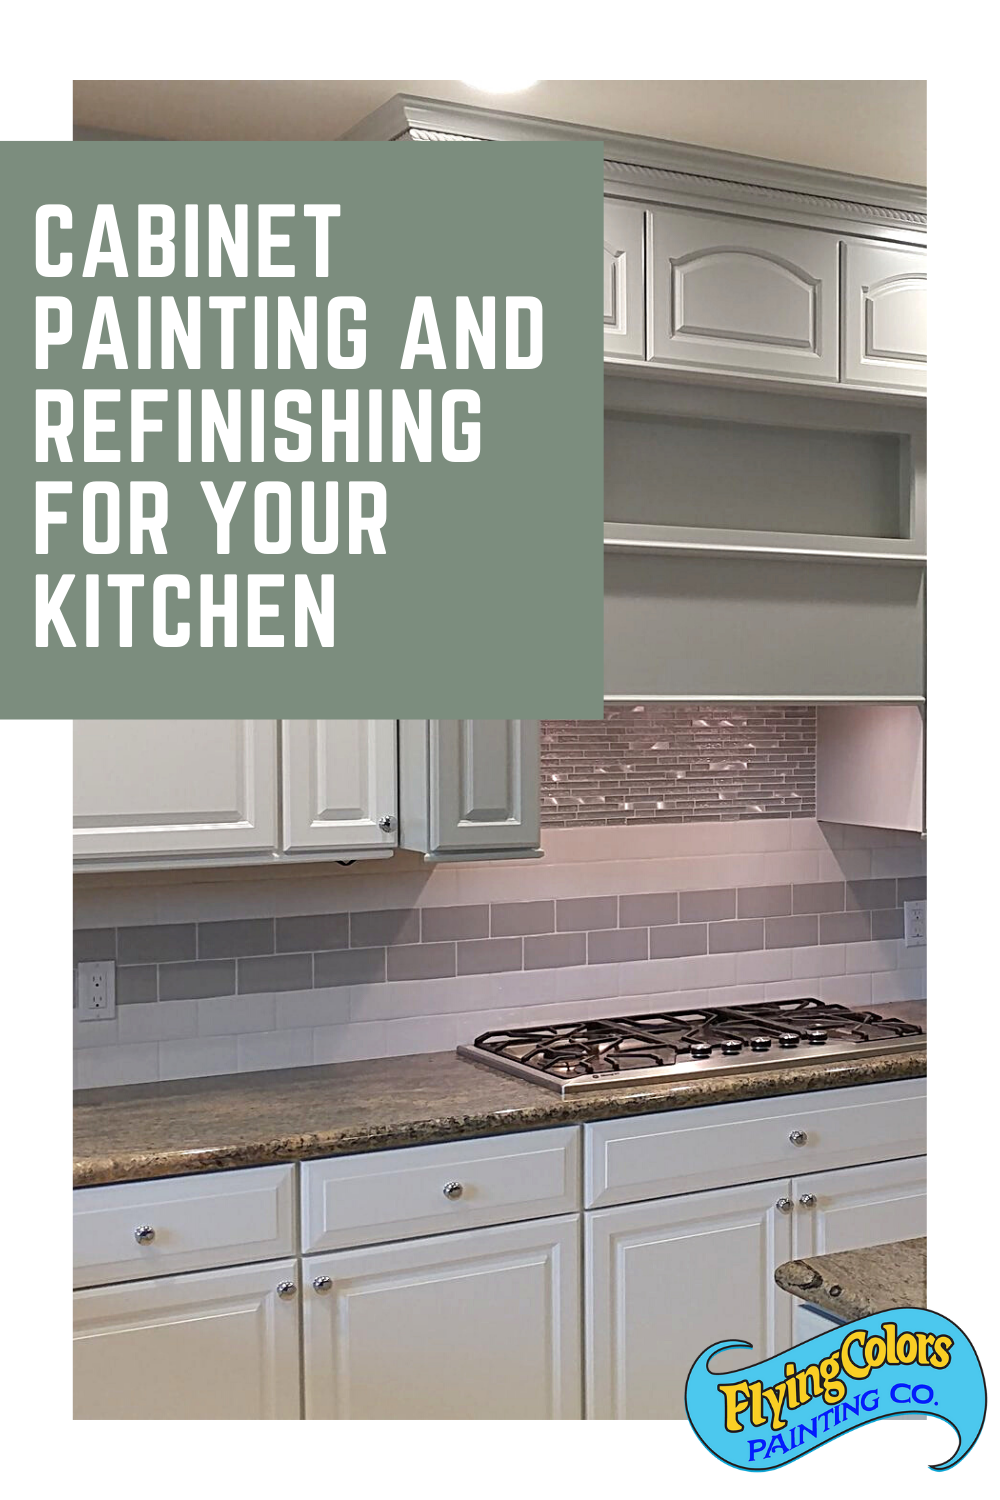 Cabinet Painting And Refinishing In 2020 Painting Cabinets Refinishing Cabinets Replacing Countertops